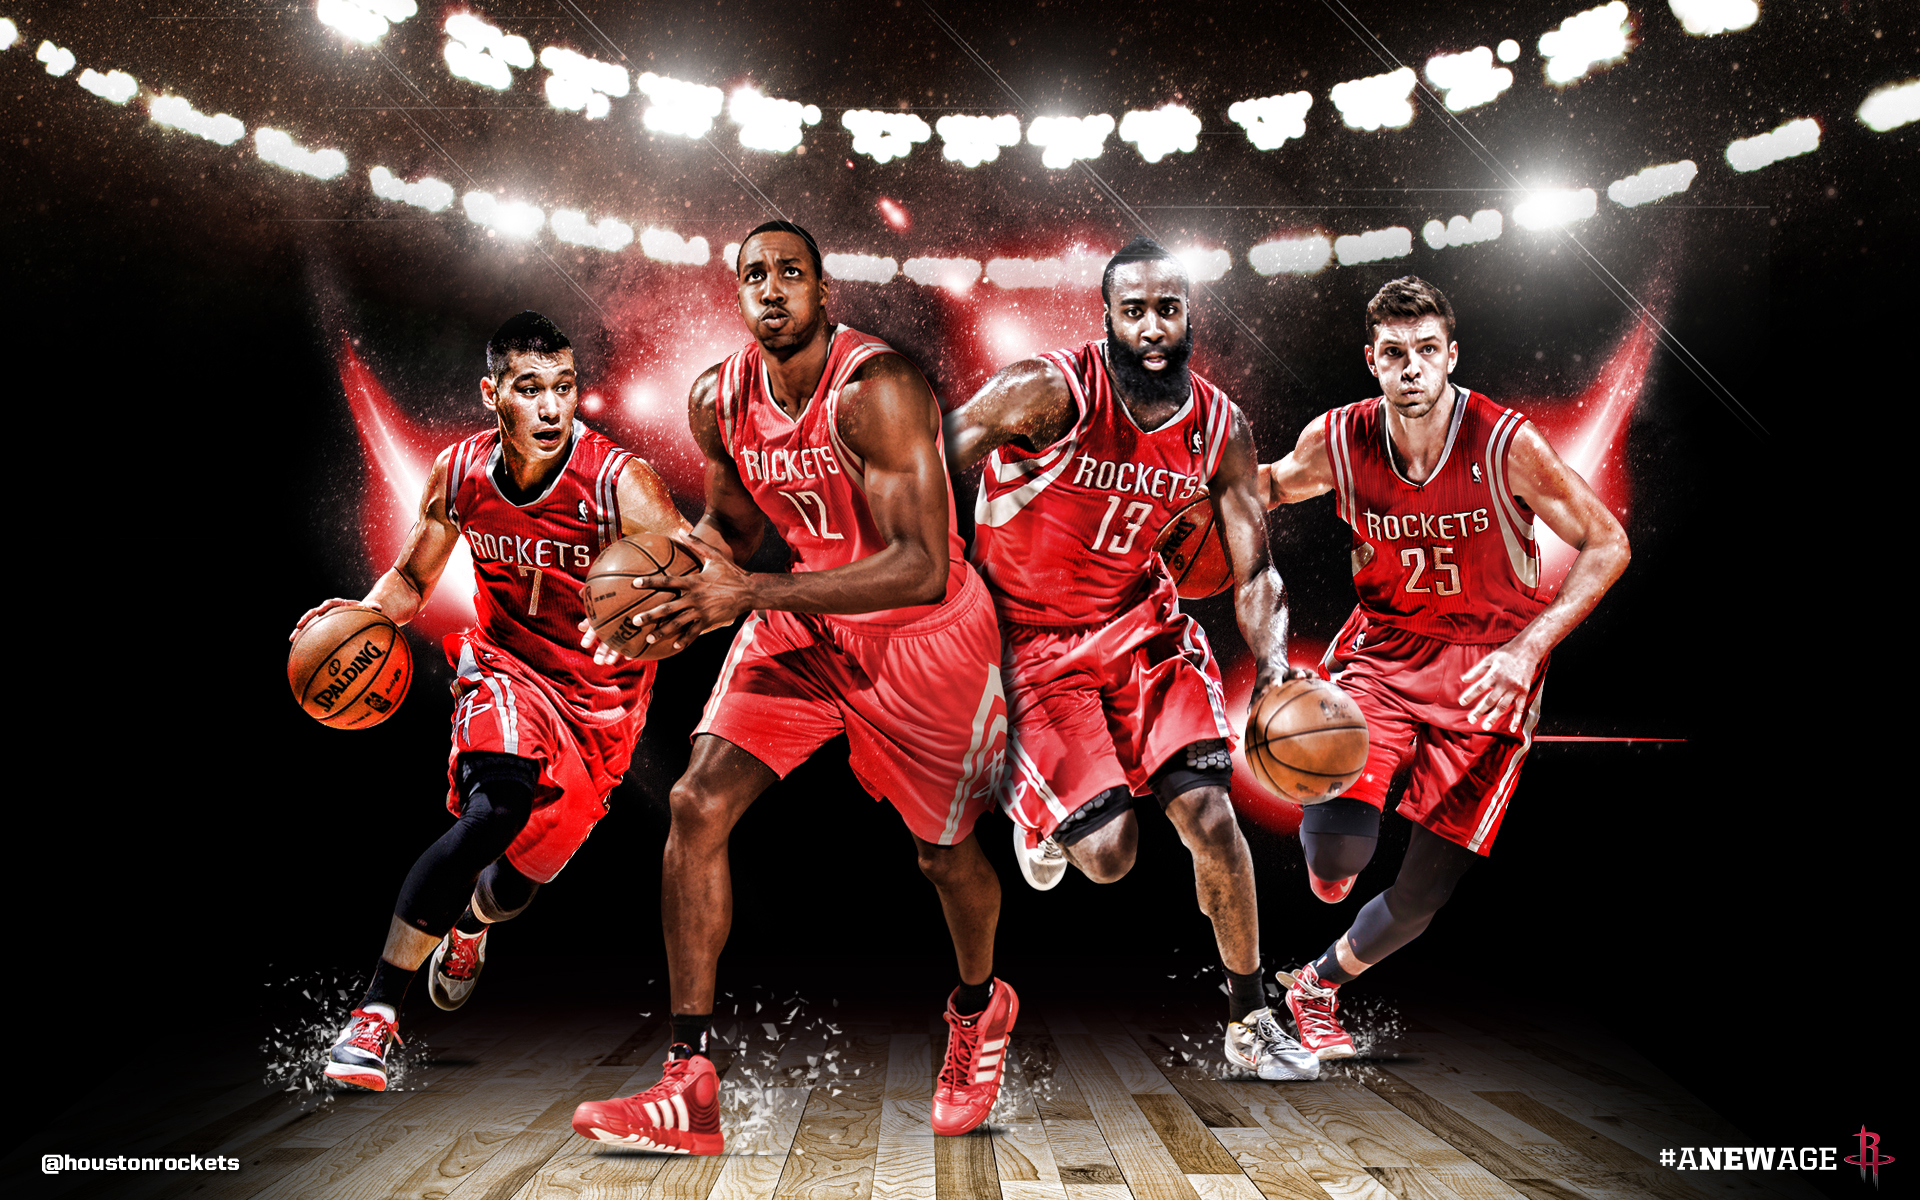 Rockets Nba Wallpaper